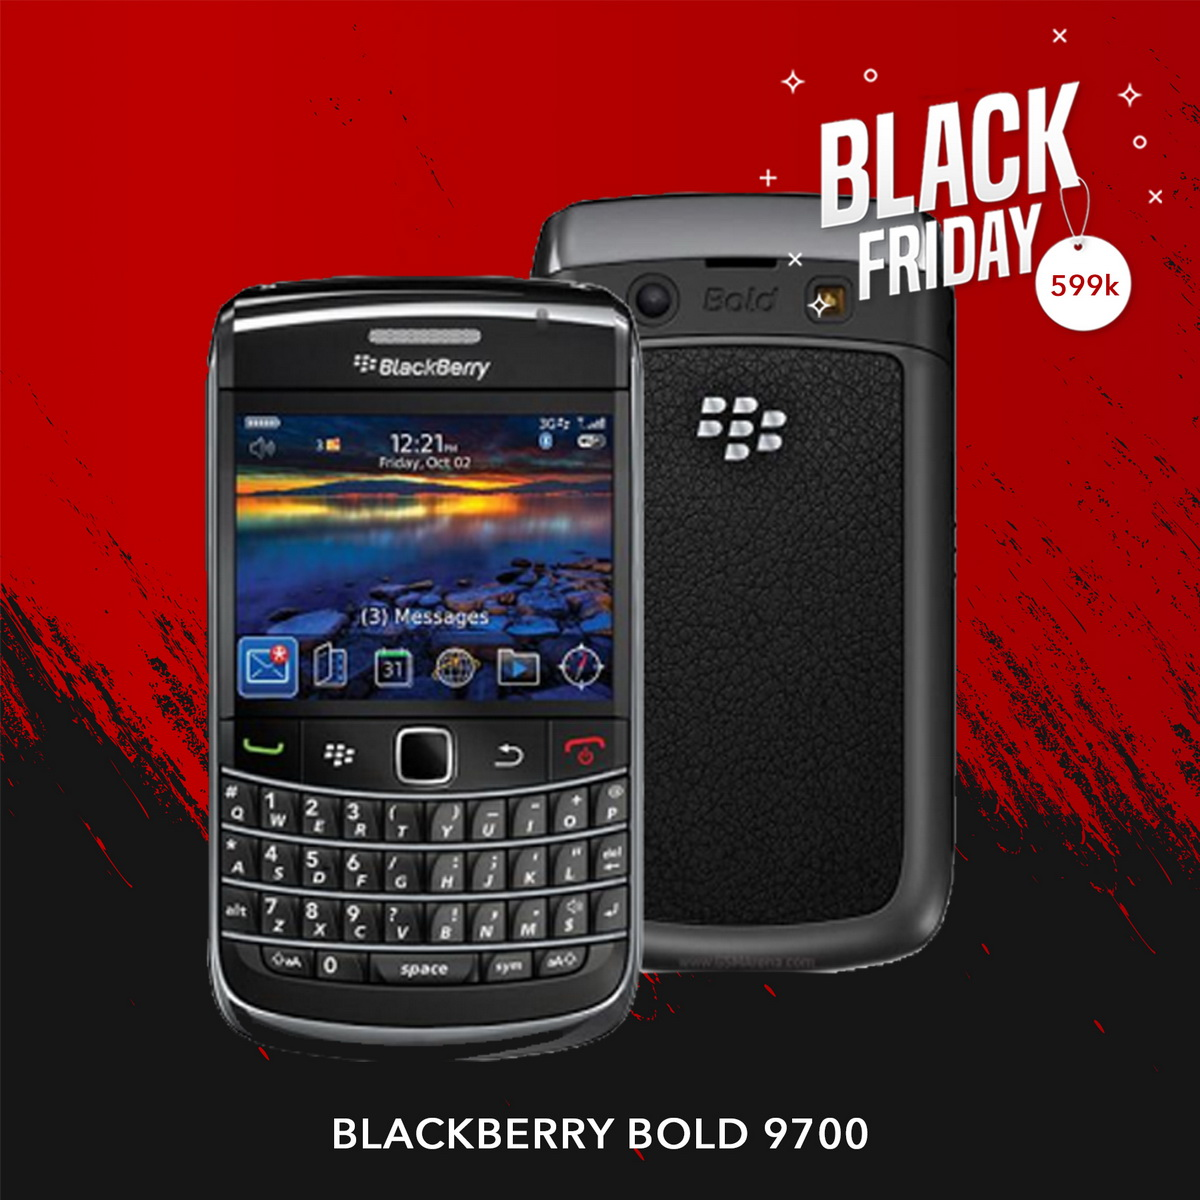 Blackberry Bold 9700 |  Black Friday